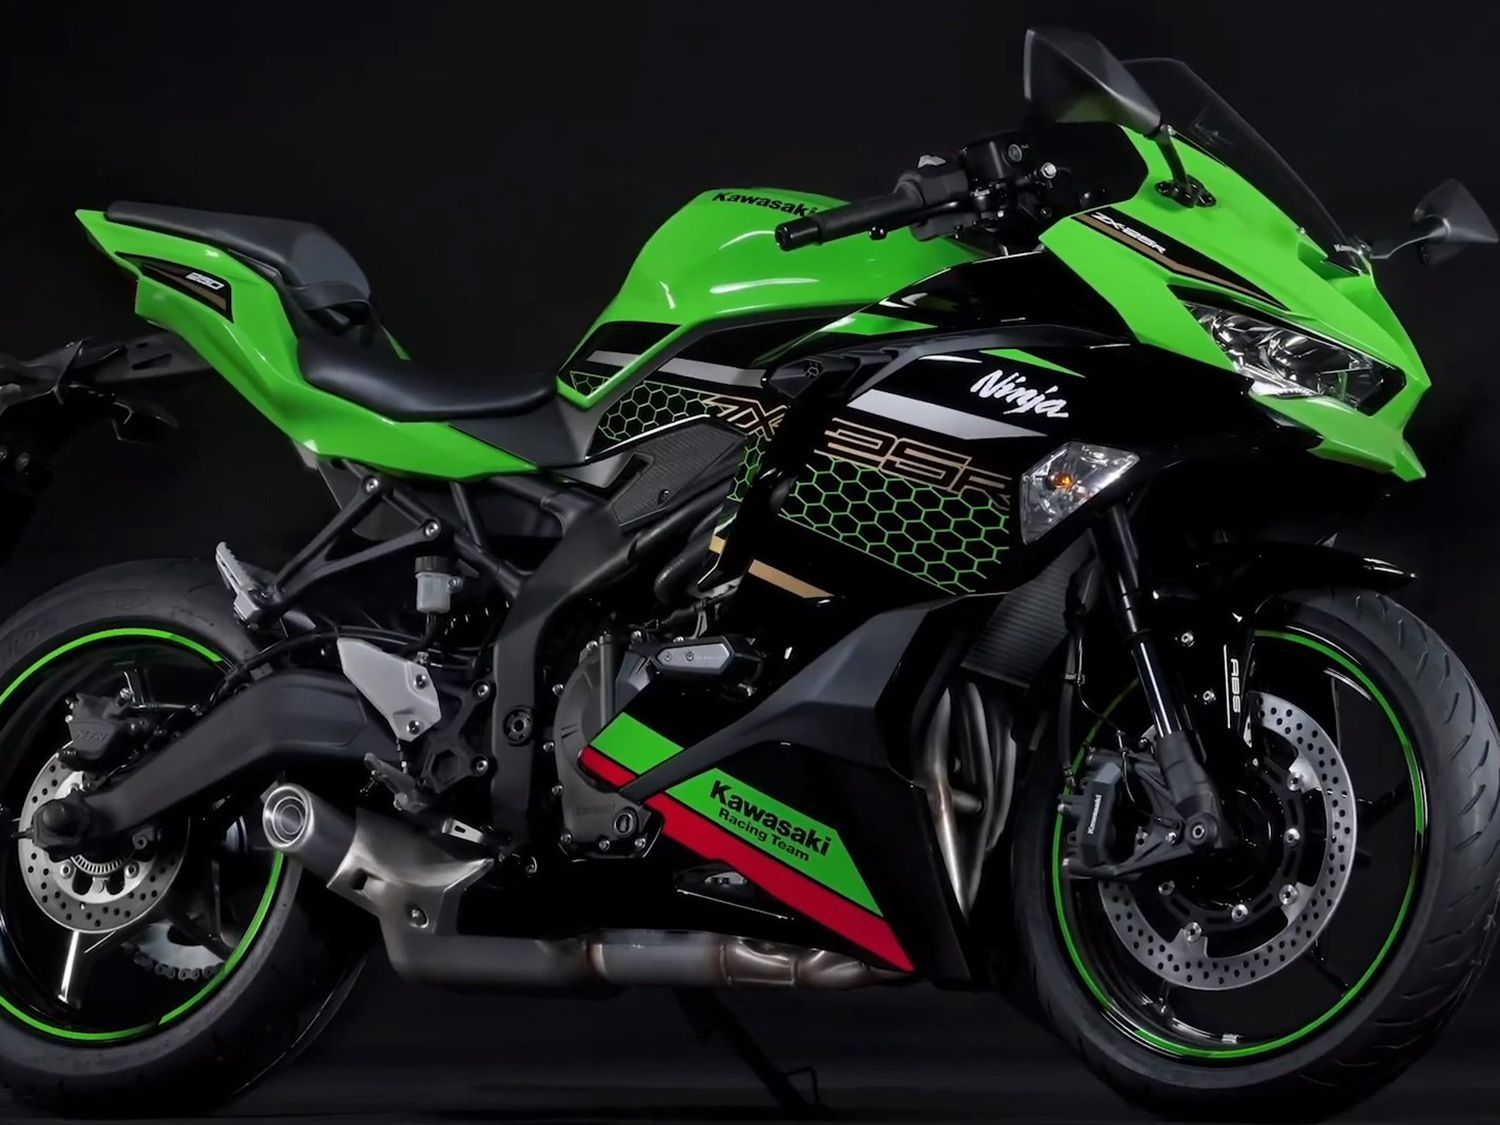 Zx25r Wallpapers Wallpaper Cave